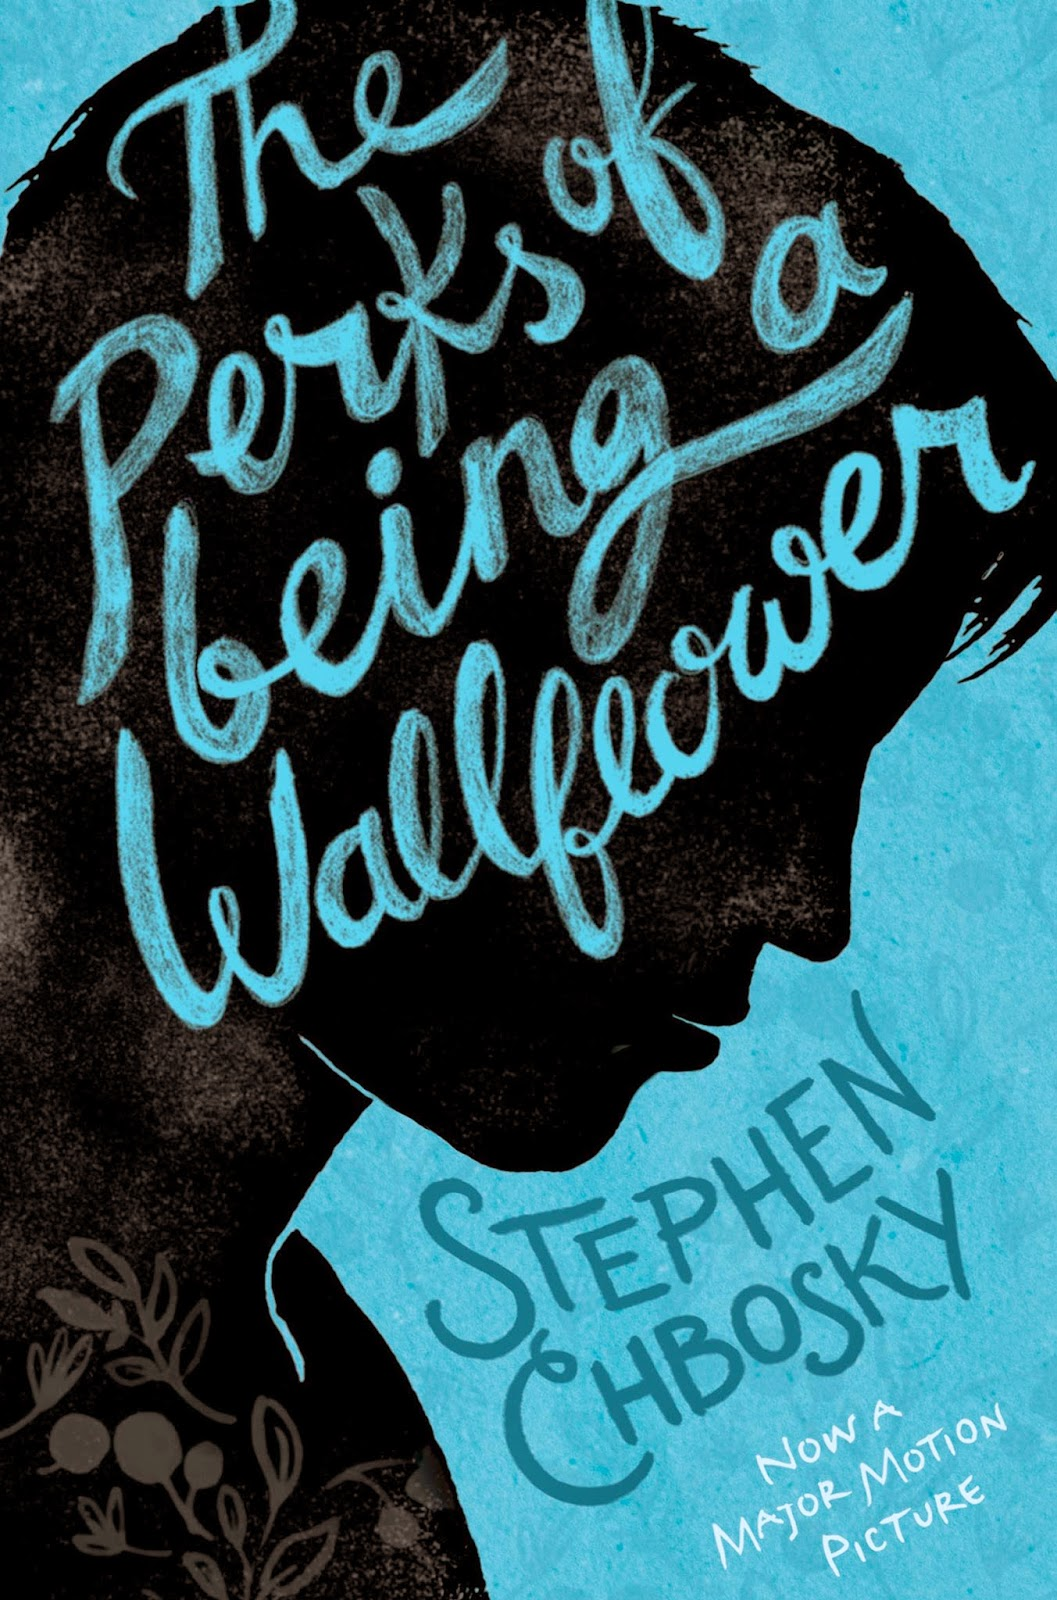 guys lit wire the perks of being a wallflower by stephen chbosky the perks of being a wallflower by stephen chbosky